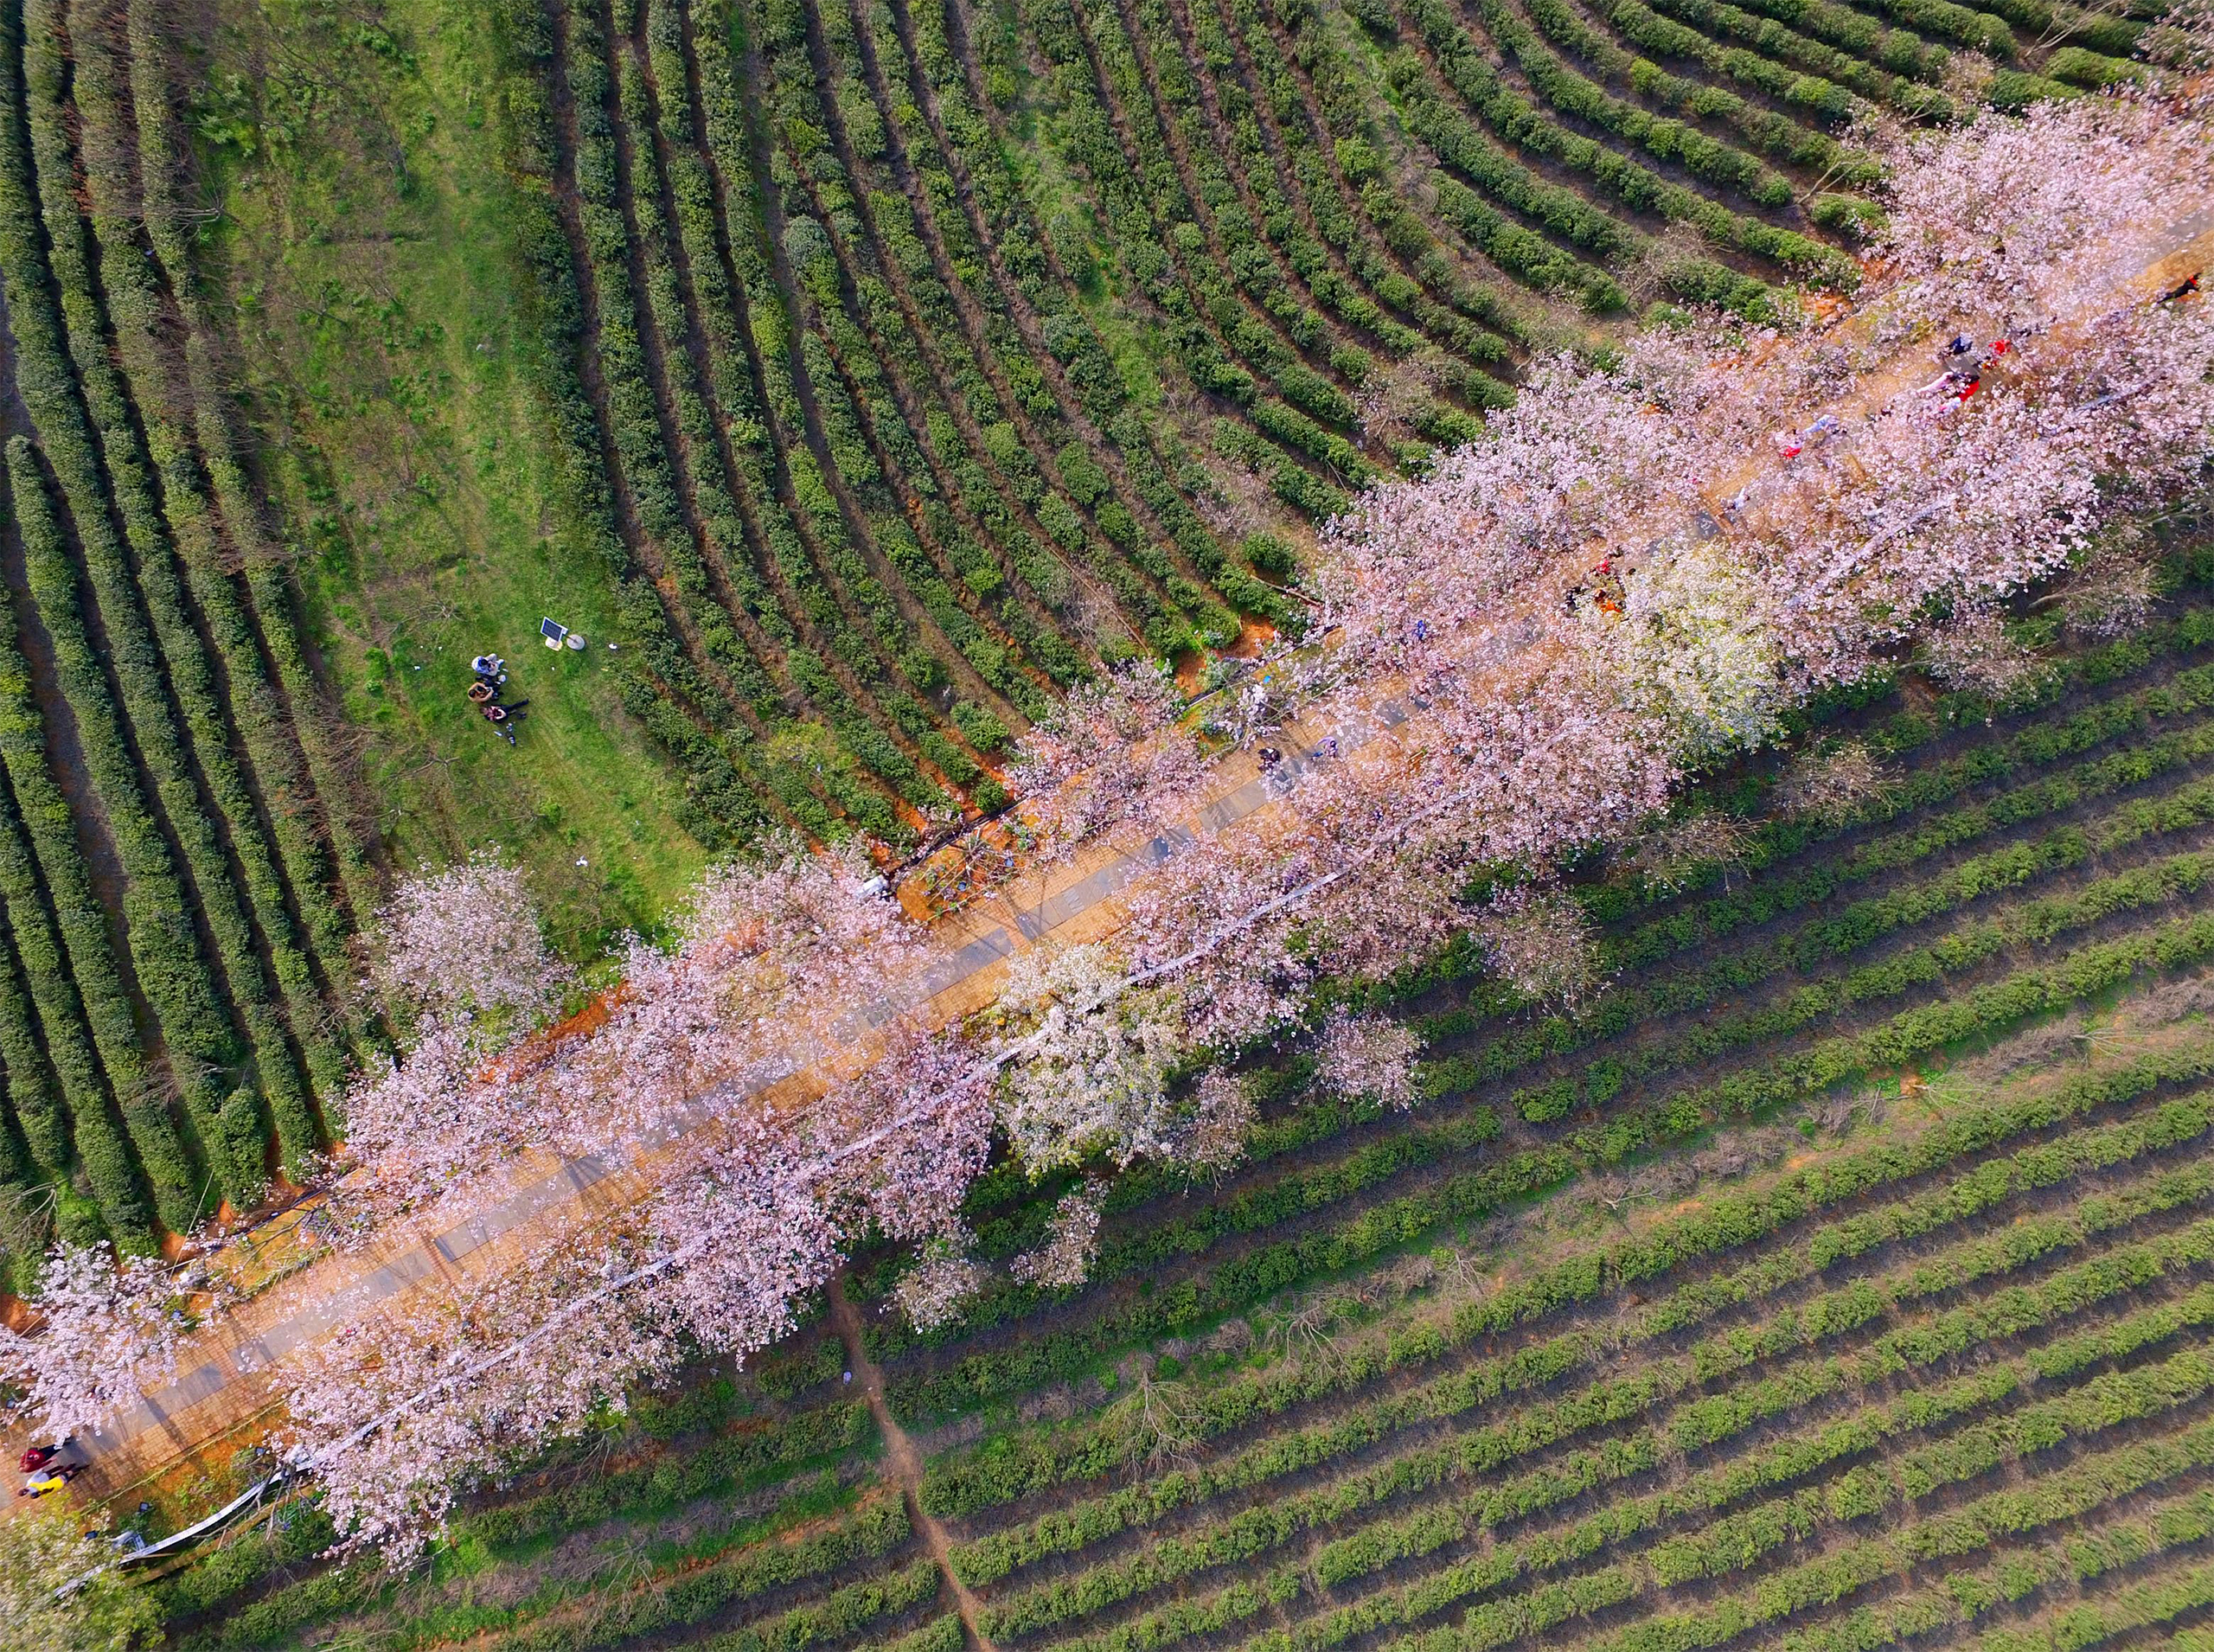 A photo taken on March 26, 2017 shows an aerial view of cherry blossoms in Fenghuanggou Scenic Spot of Nanchang County, east China's Jiangxi Province.